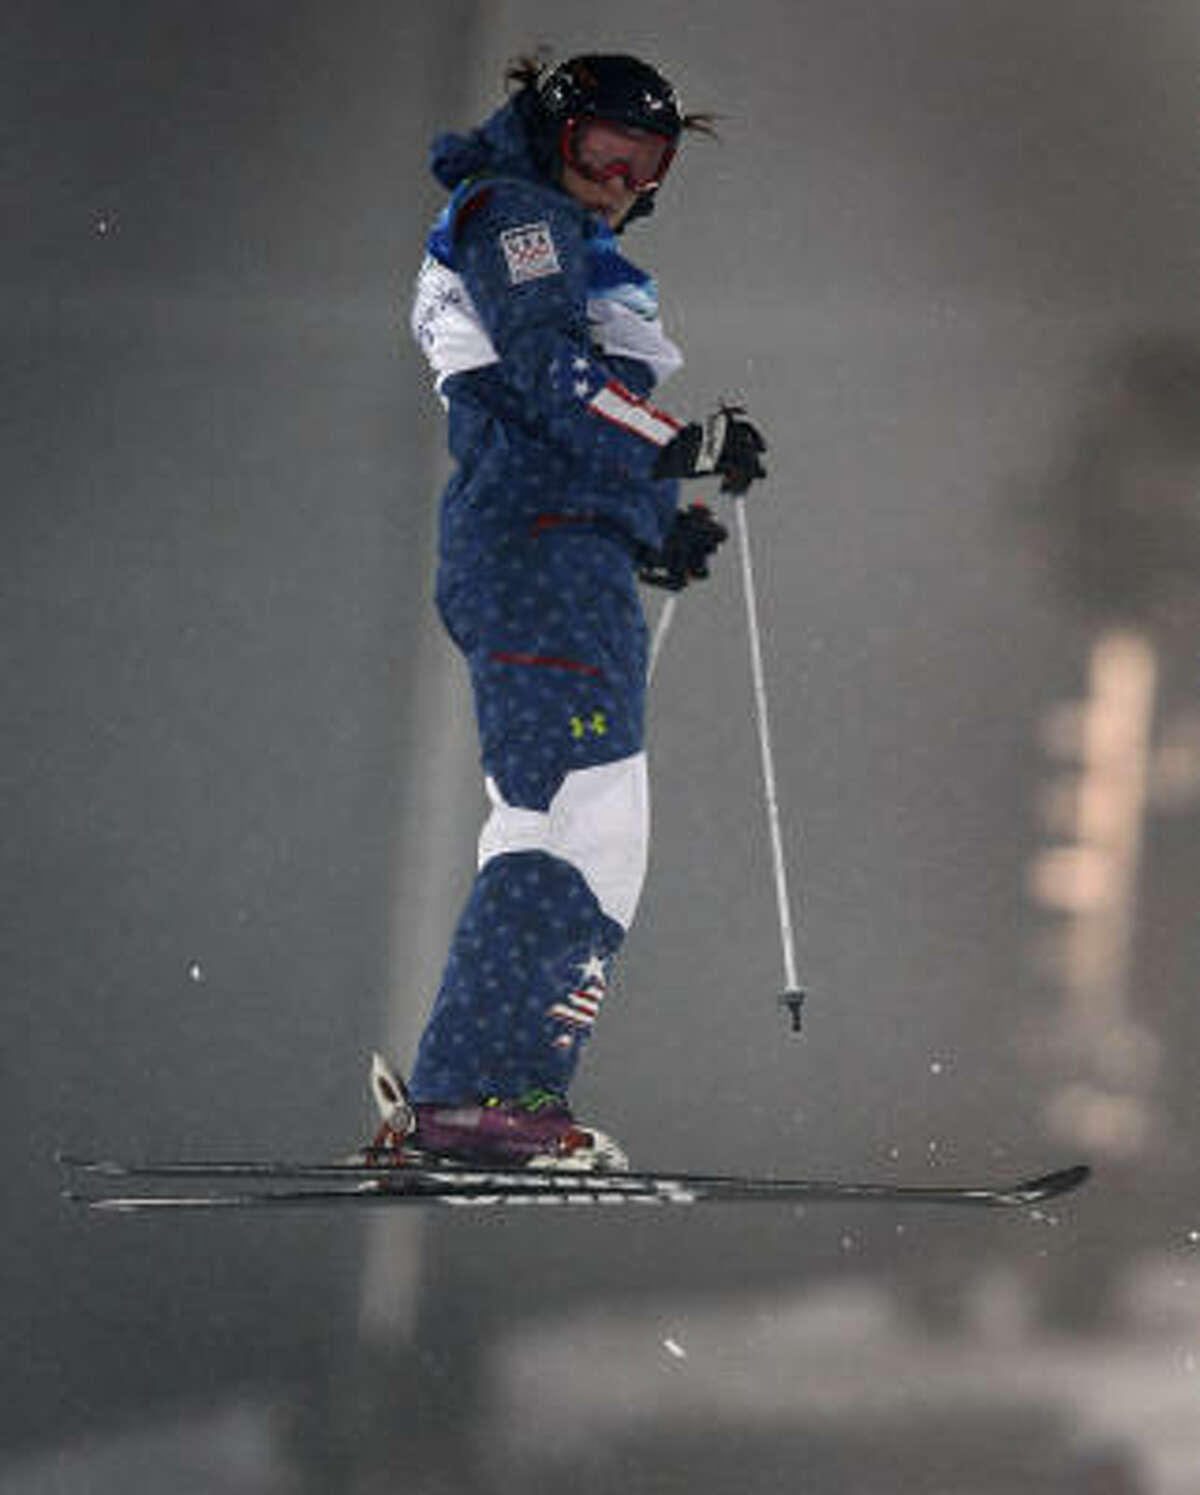 Hannah Kearney completes a helicopter spin on her gold-medal run in the women's moguls competition.